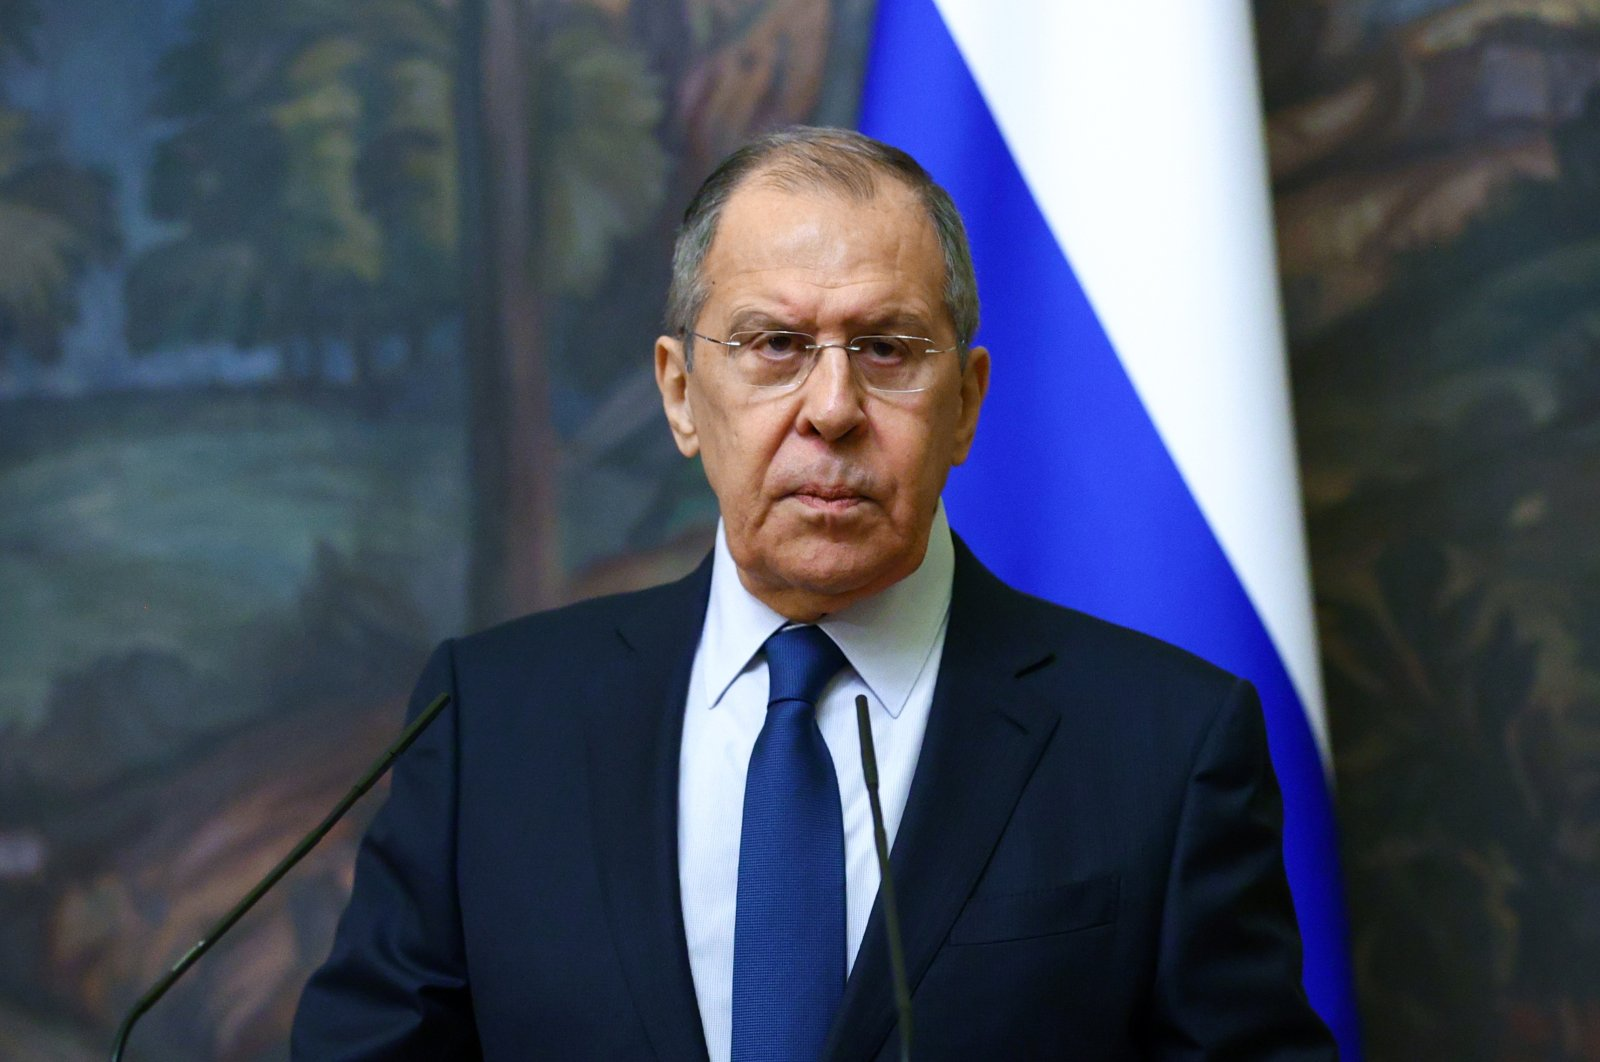 Russia's Foreign Minister Sergei Lavrov attends a news conference following a meeting with his Uzbek counterpart Abdulaziz Kamilov in Moscow, Russia, March 2, 2021. (Russian Foreign Ministry via Reuters)